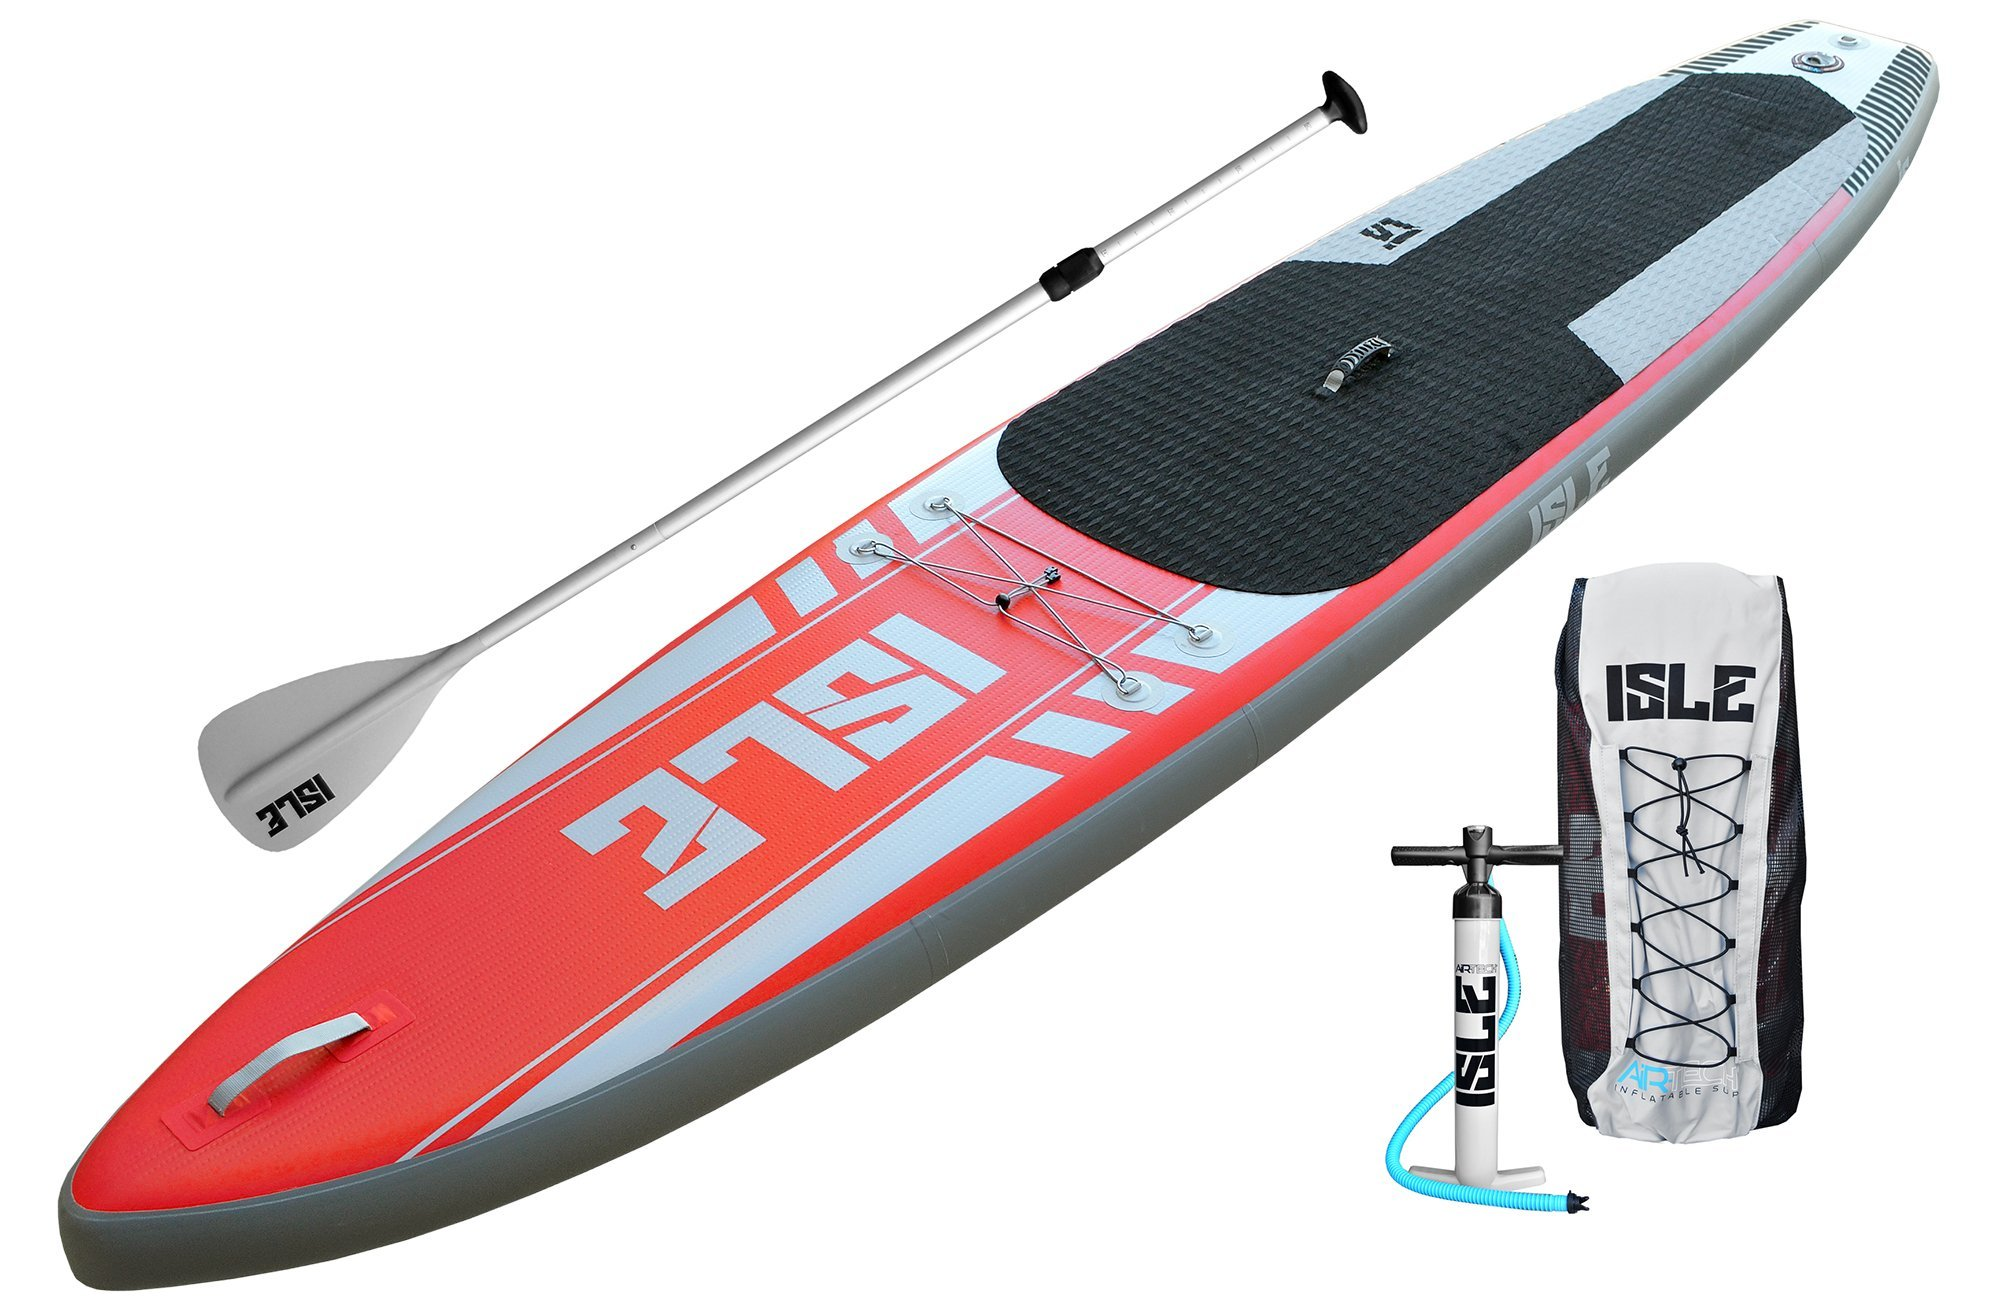 ISLE 12'6 Airtech Inflatable Touring Stand Up Paddle Board (6'' Thick) Package | Includes Adjustable Travel Paddle, Carrying Bag, Pump